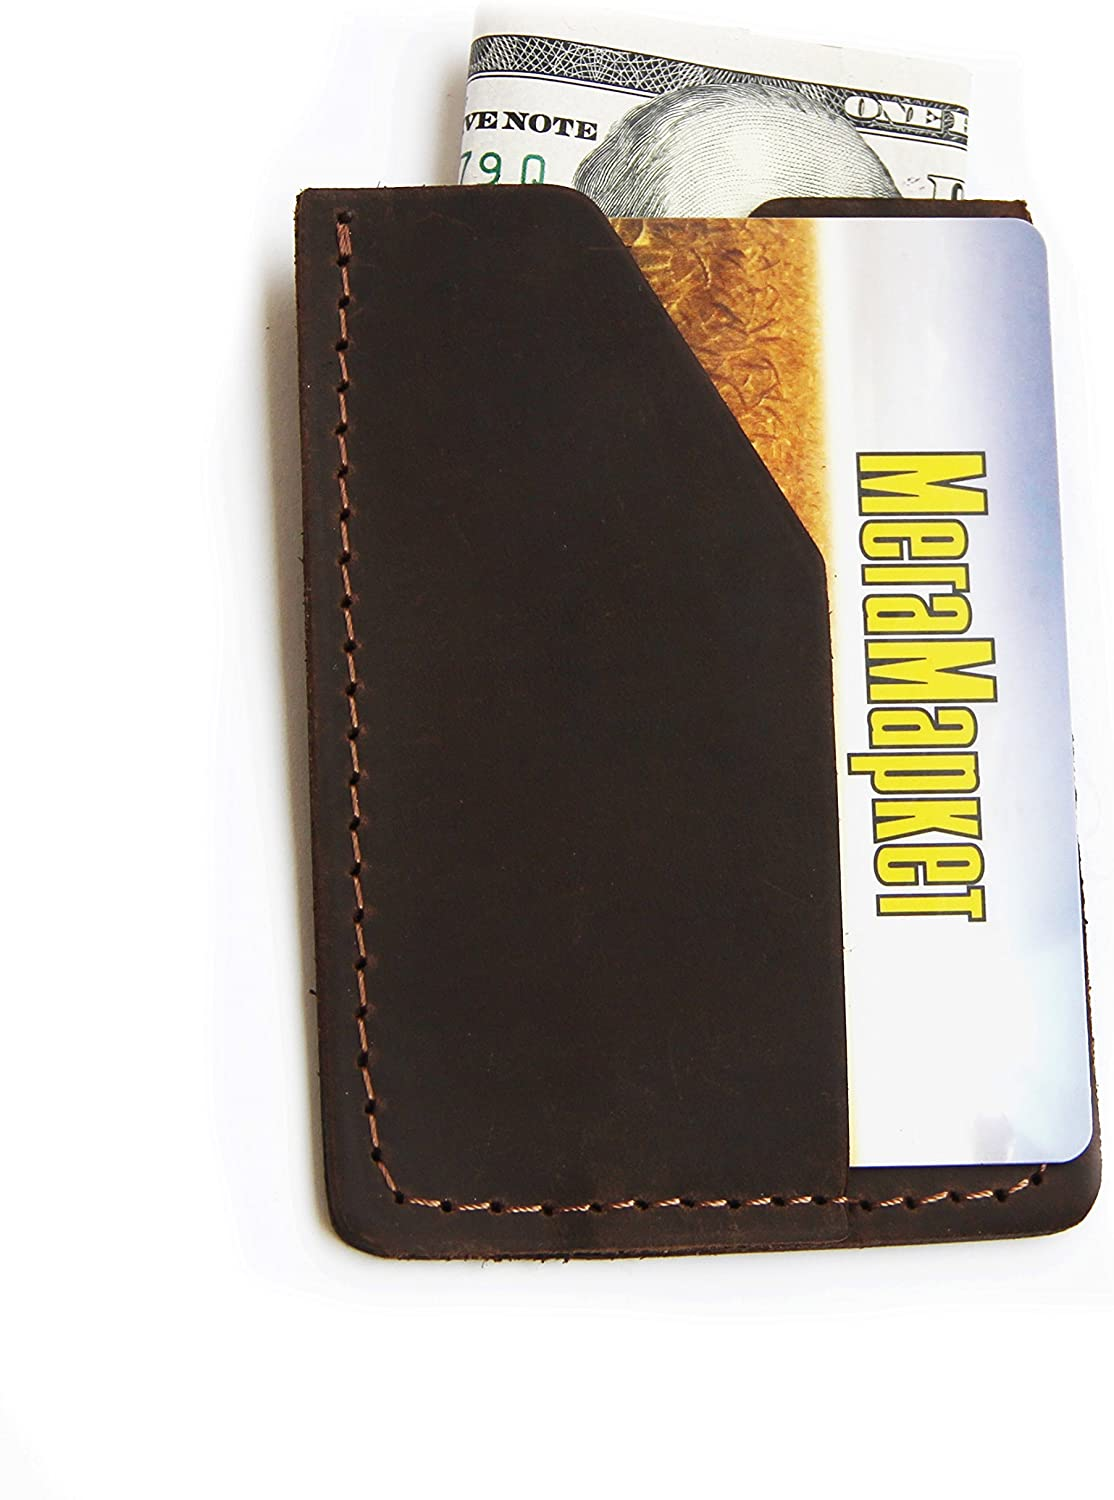 Wallet Credit Card wallet Minimalist Small Slim Crazy horse Designer Card Holder